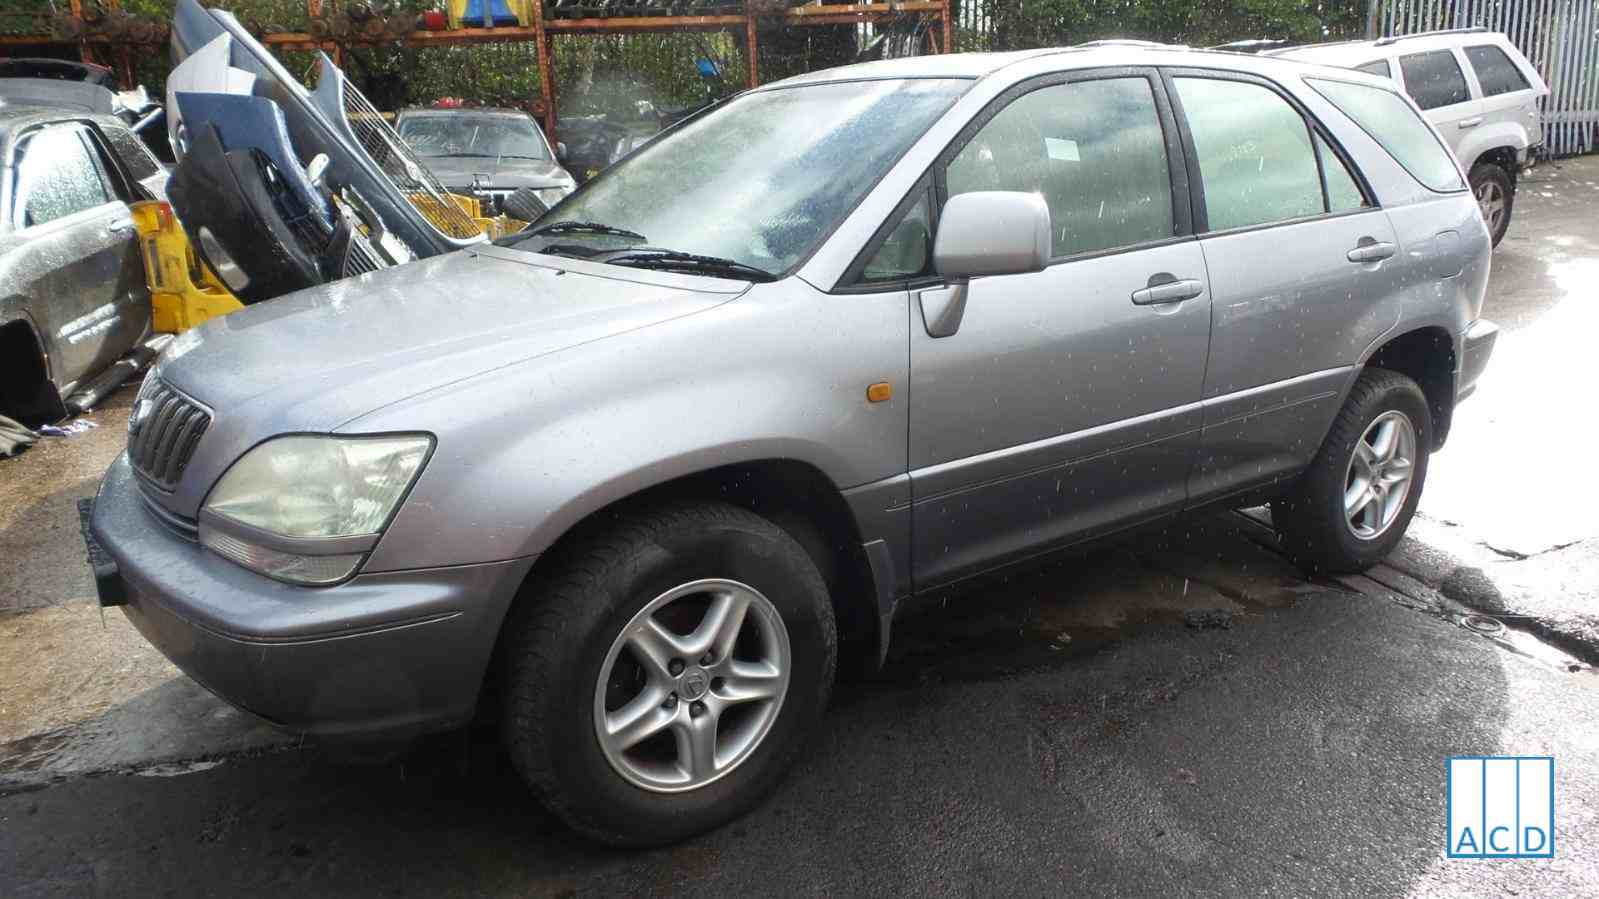 Lexus RX 300 SE 3.0LPetrol 4-speed Automatic 2002 #2783 01